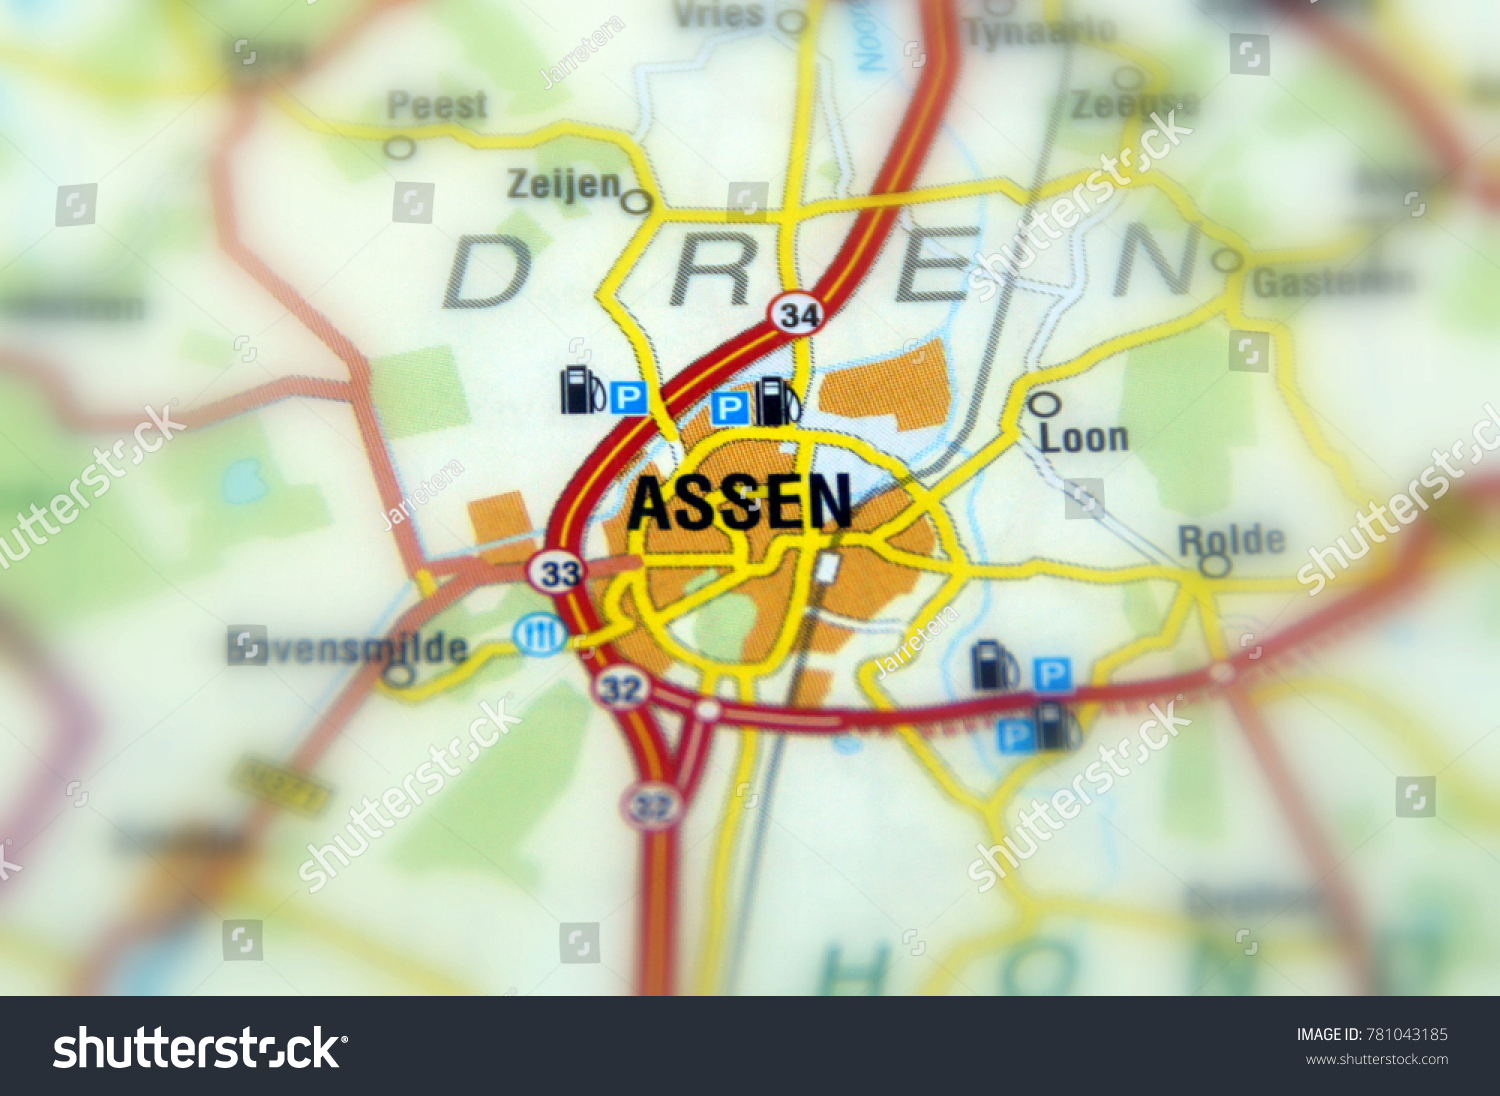 Assen City Northeastern Netherlands Capital Province Stock Photo